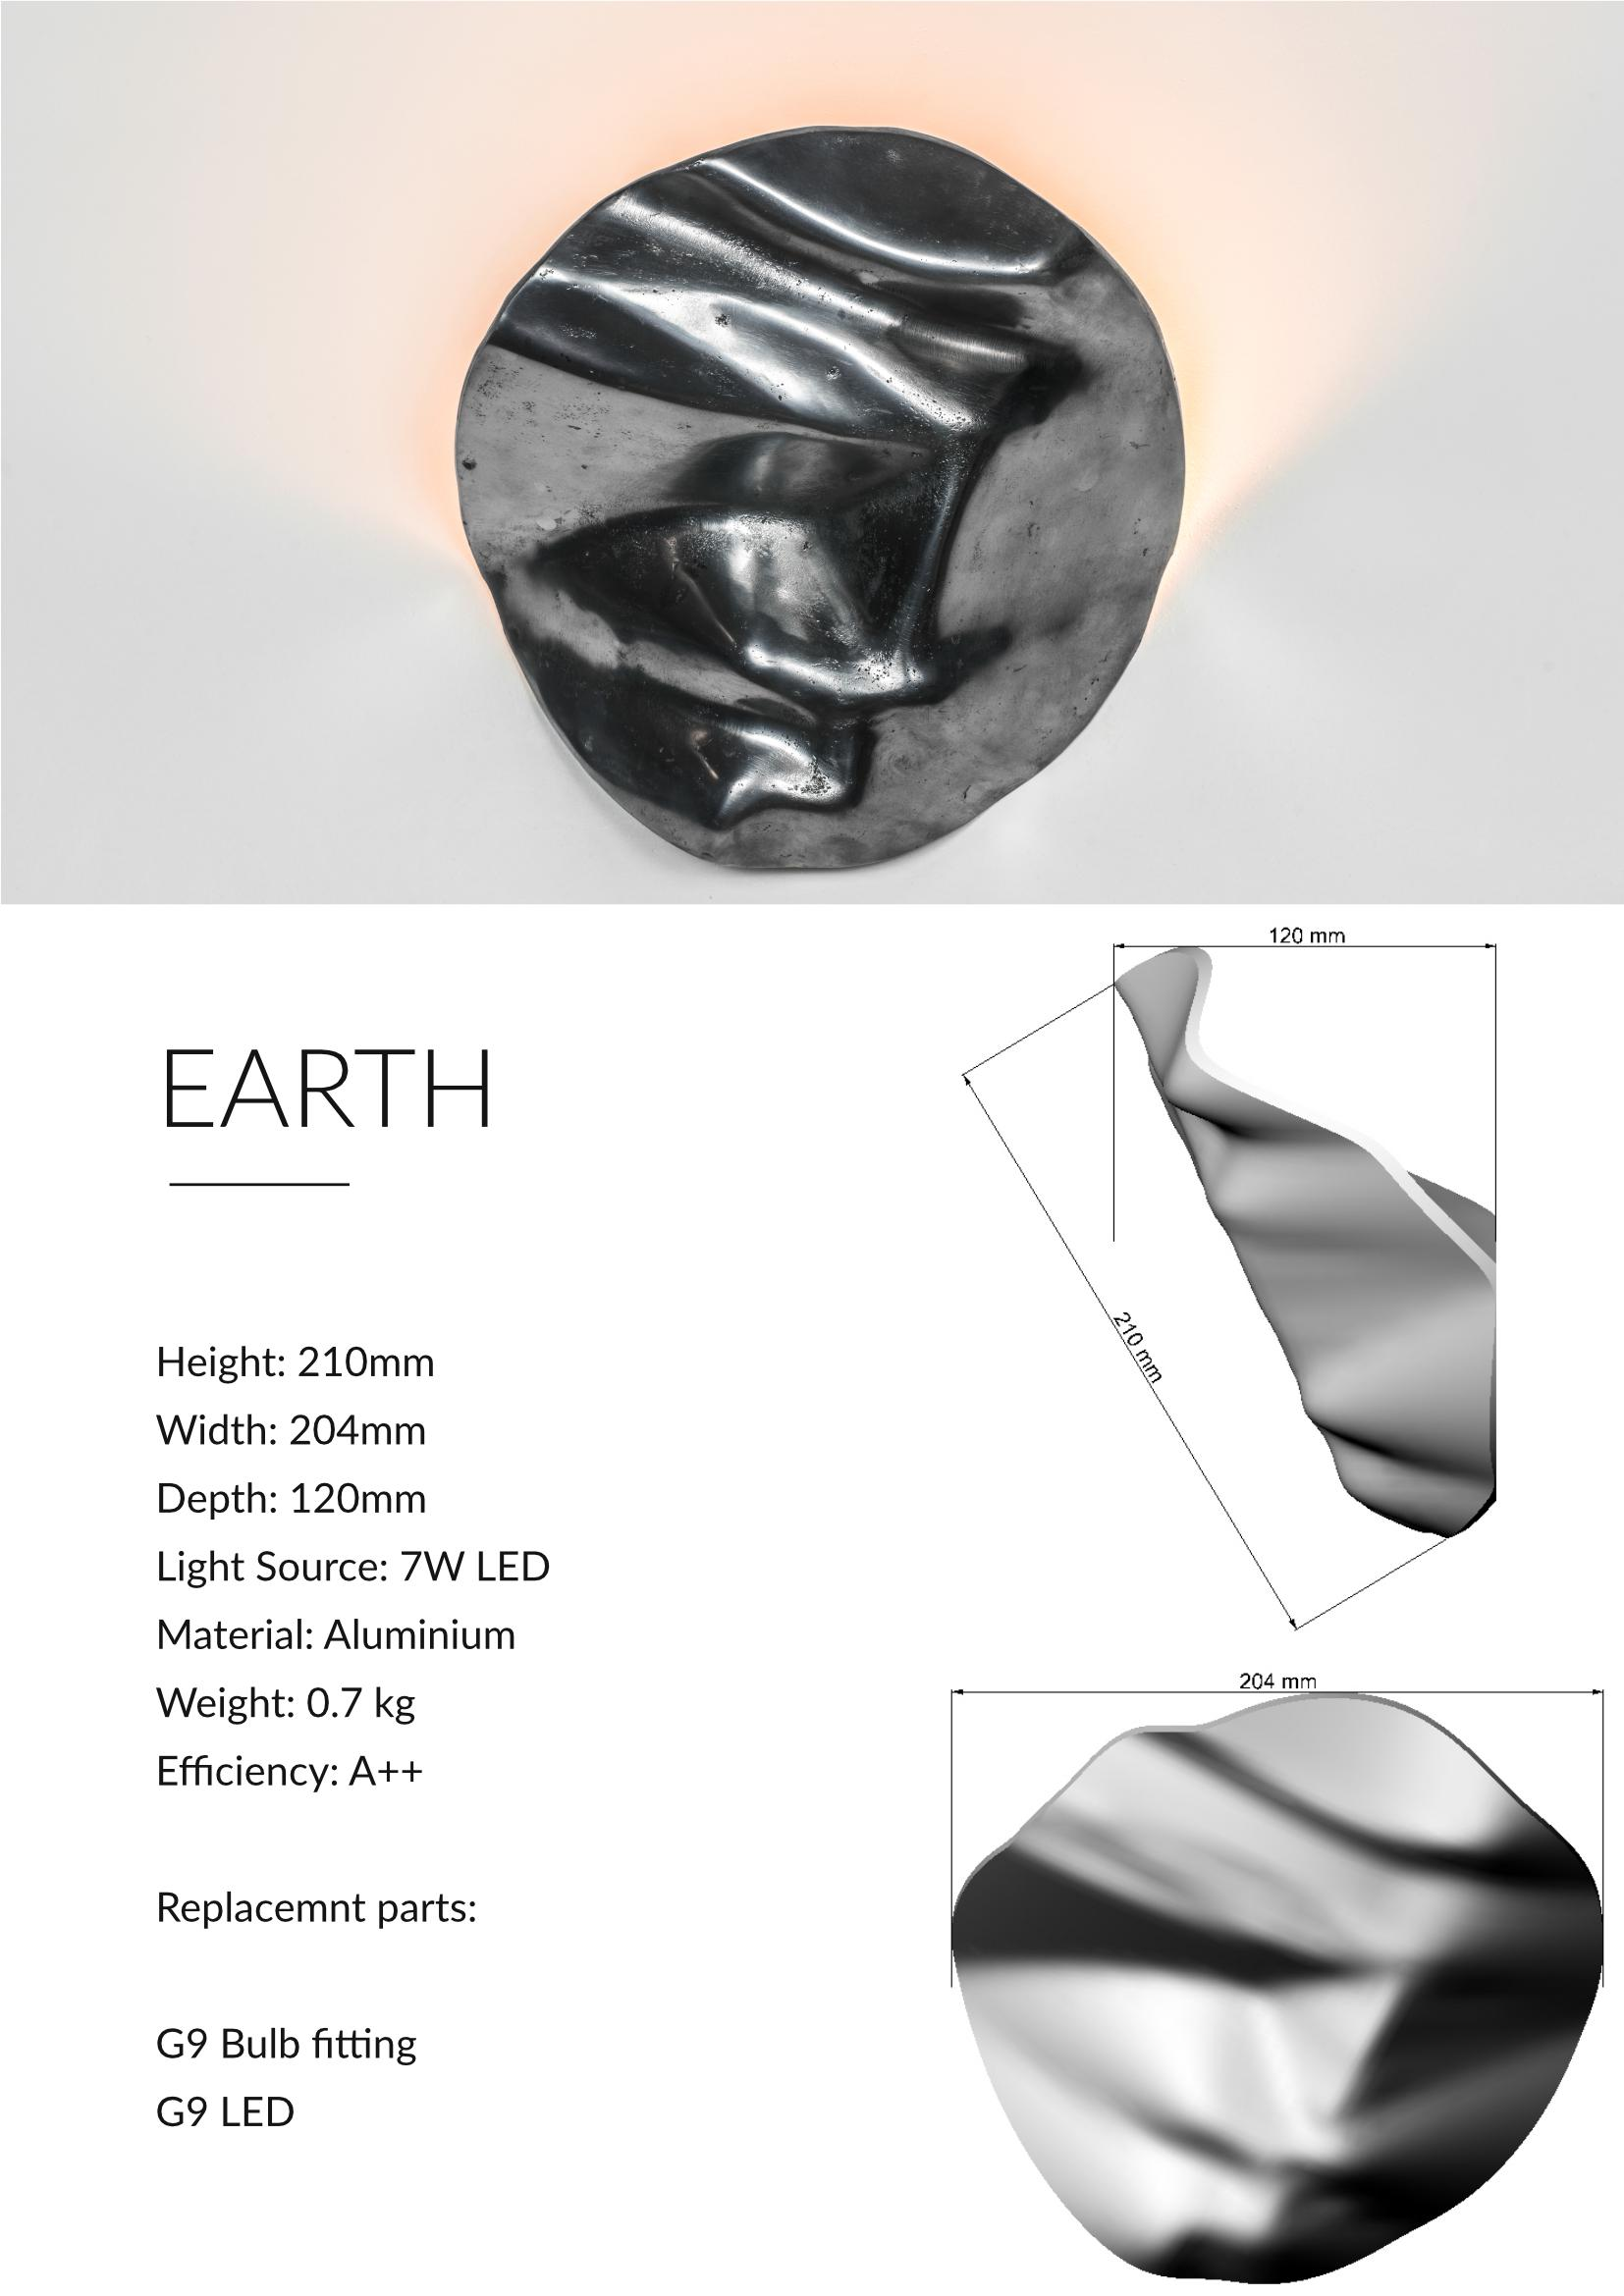 Earth Contemporary Uplighter Design Technical Sheet